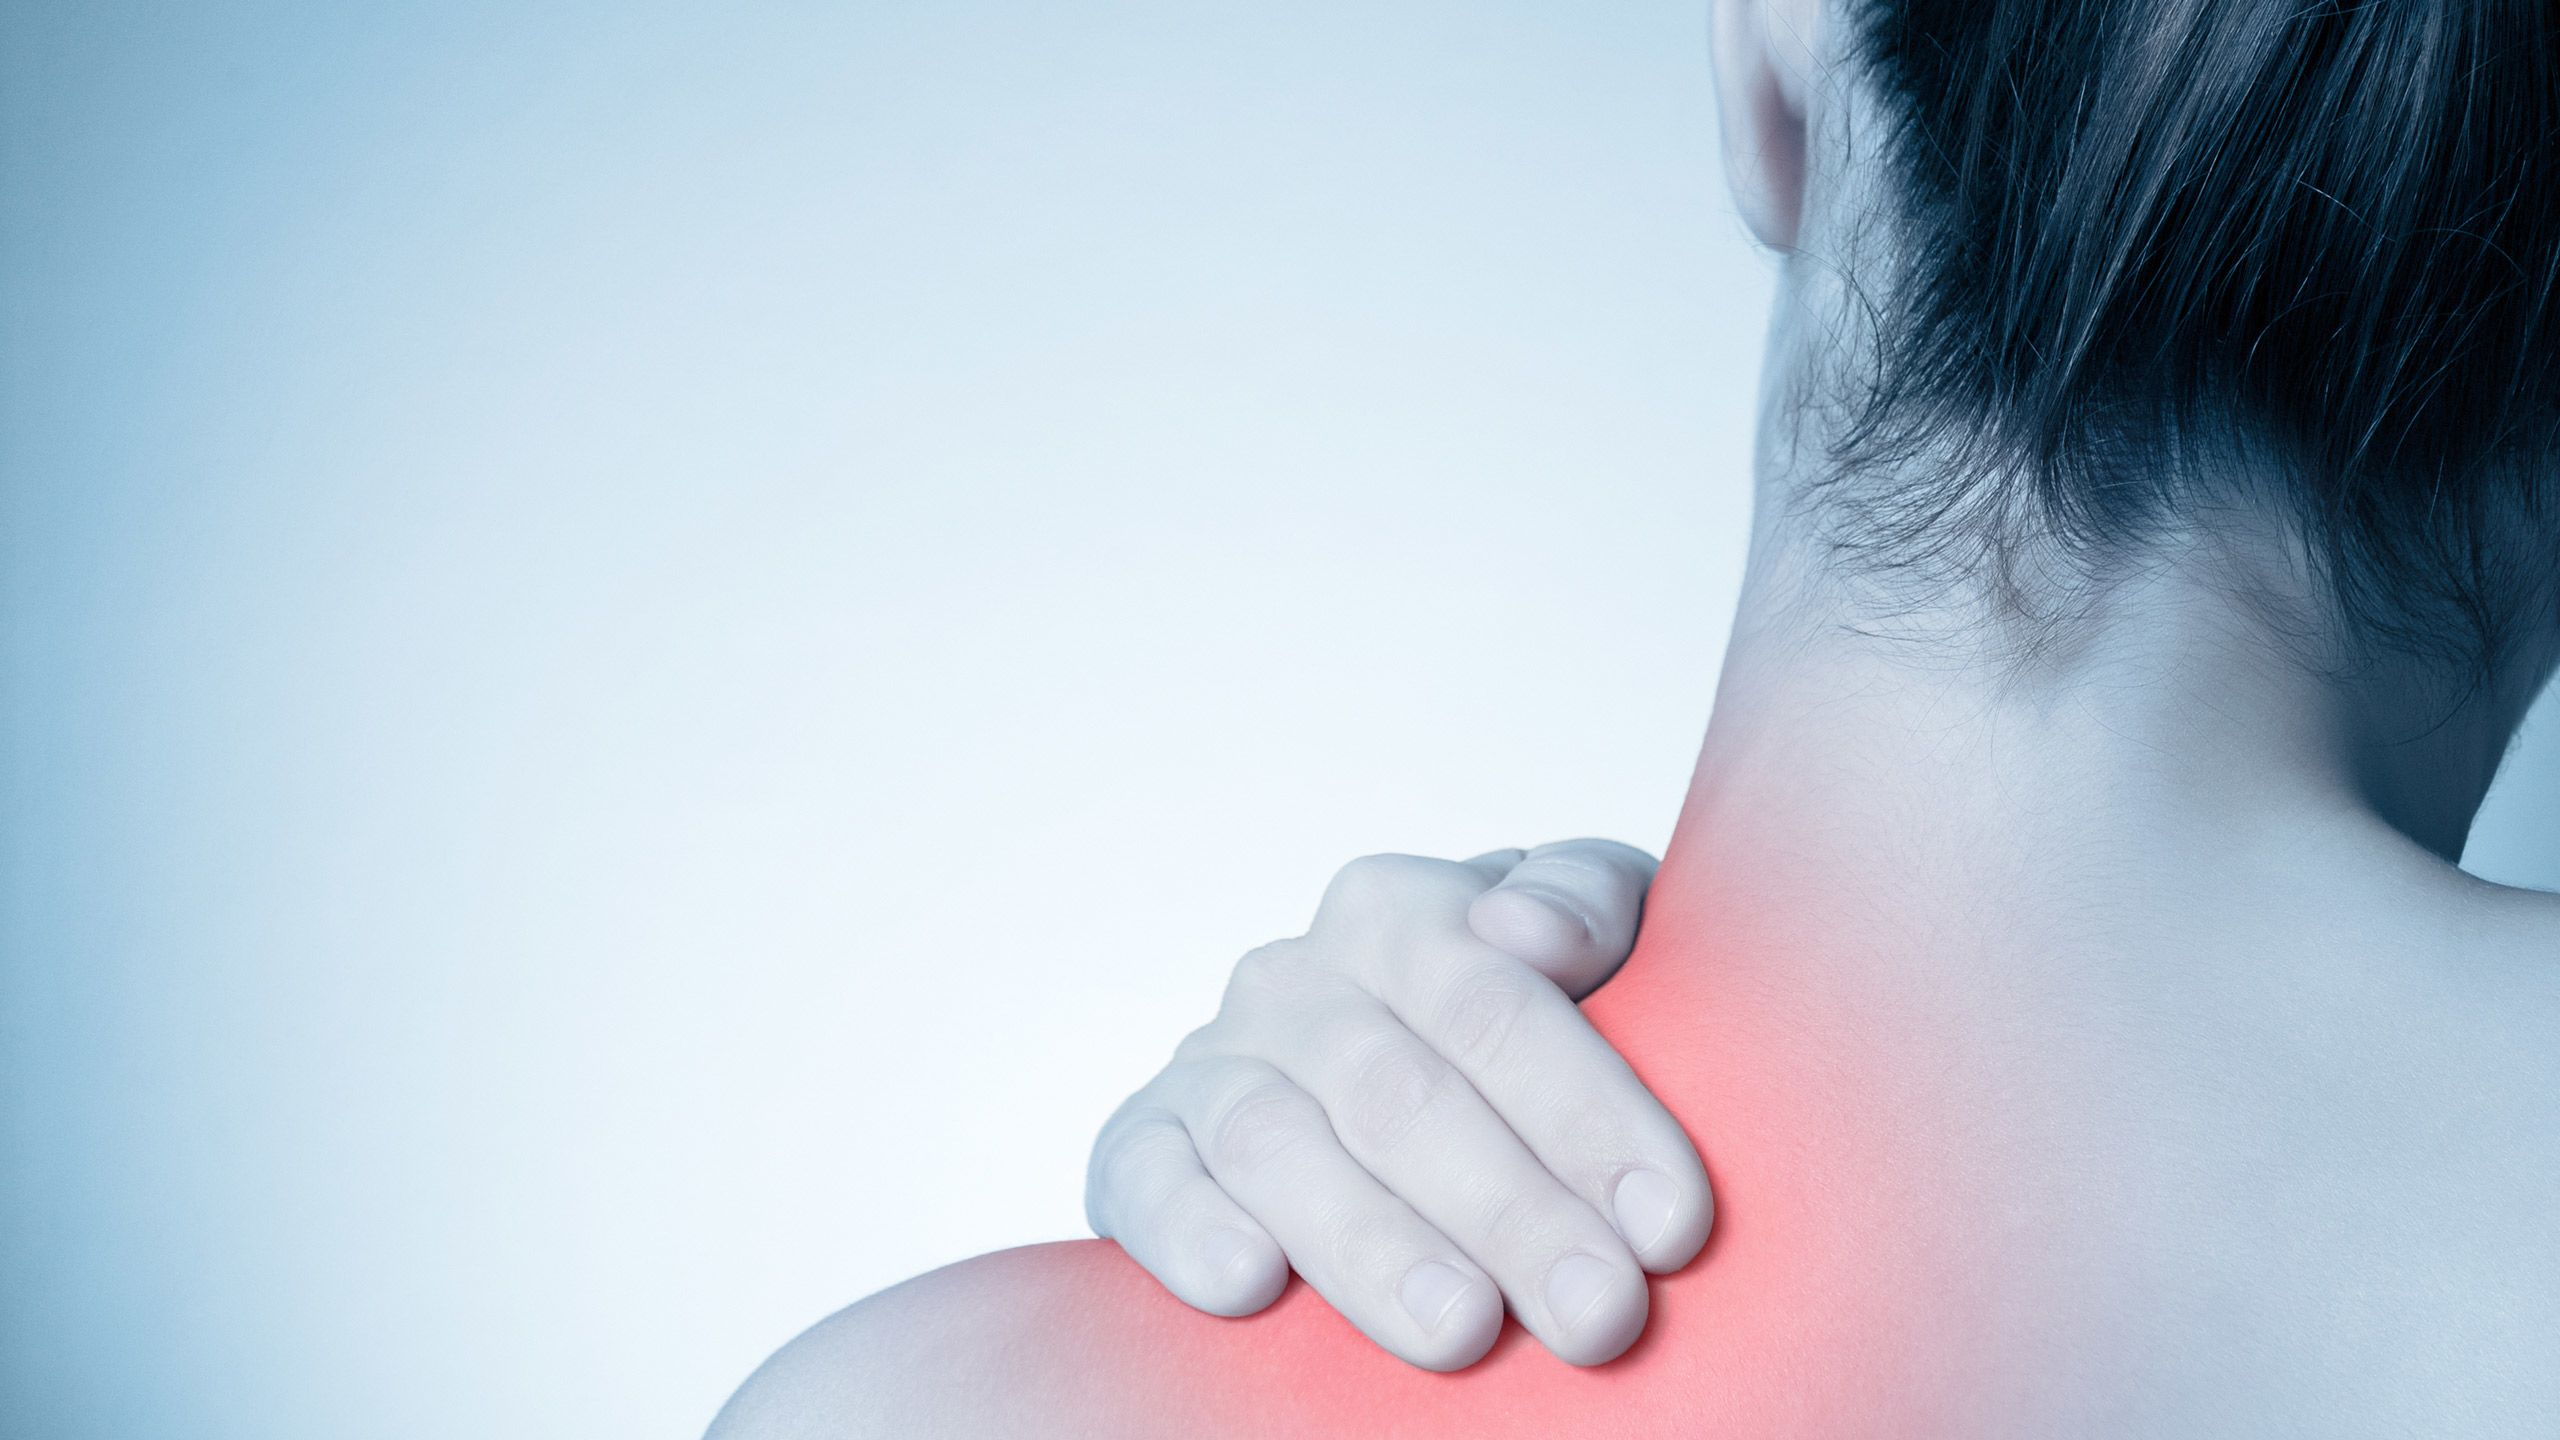 6 Chronic Illnesses With Surprising Links to Inflammation